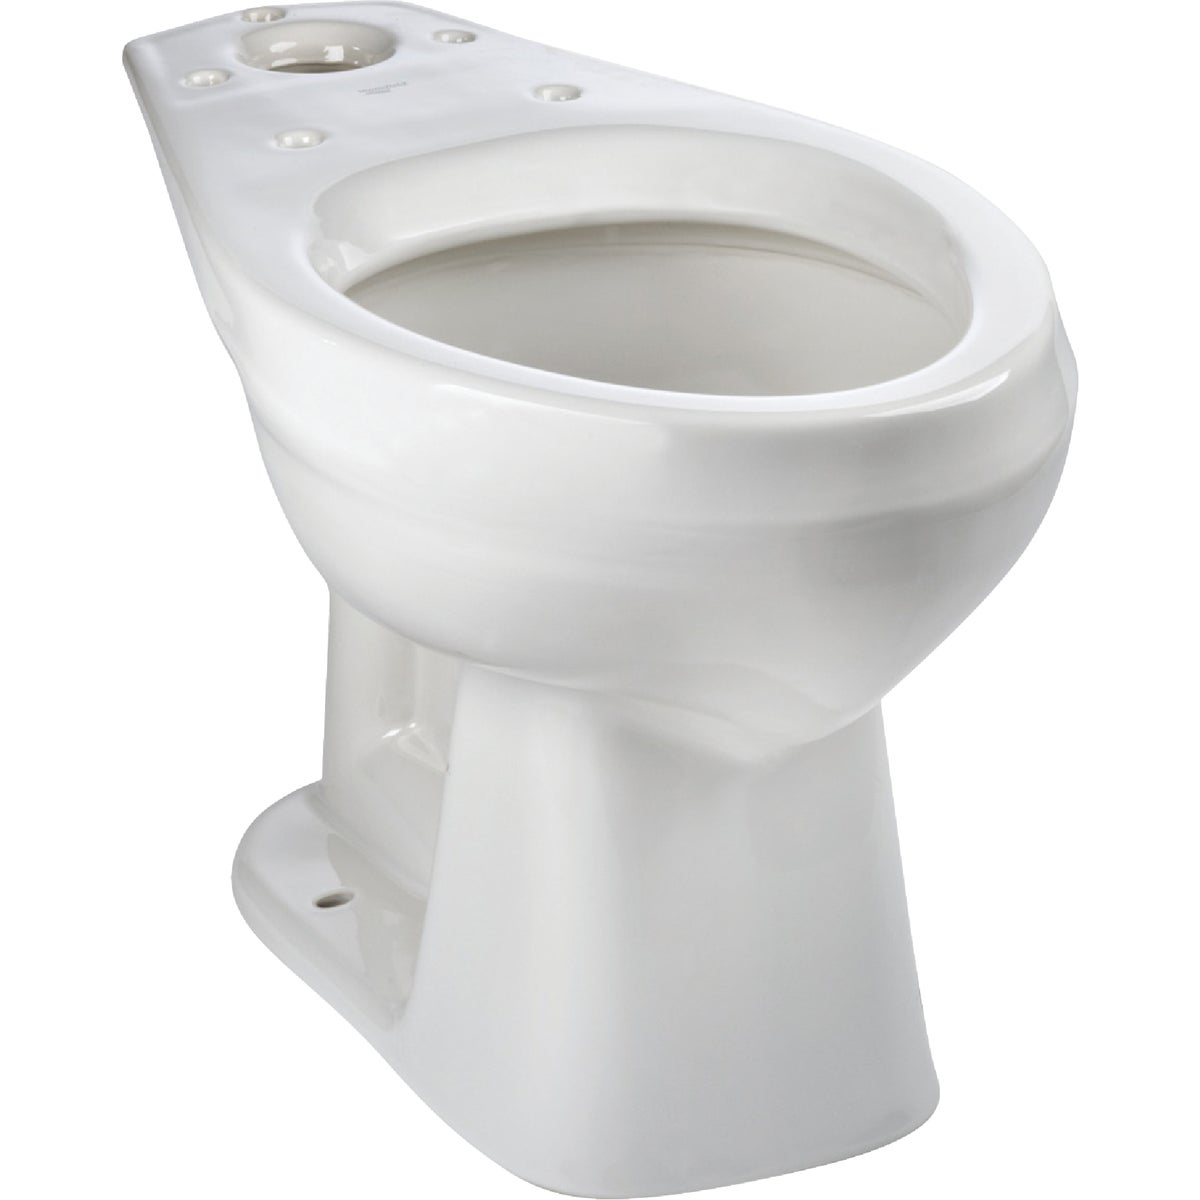 WHITE ADA TOILET BOWL - 137210040 by Mansfield Plumbing